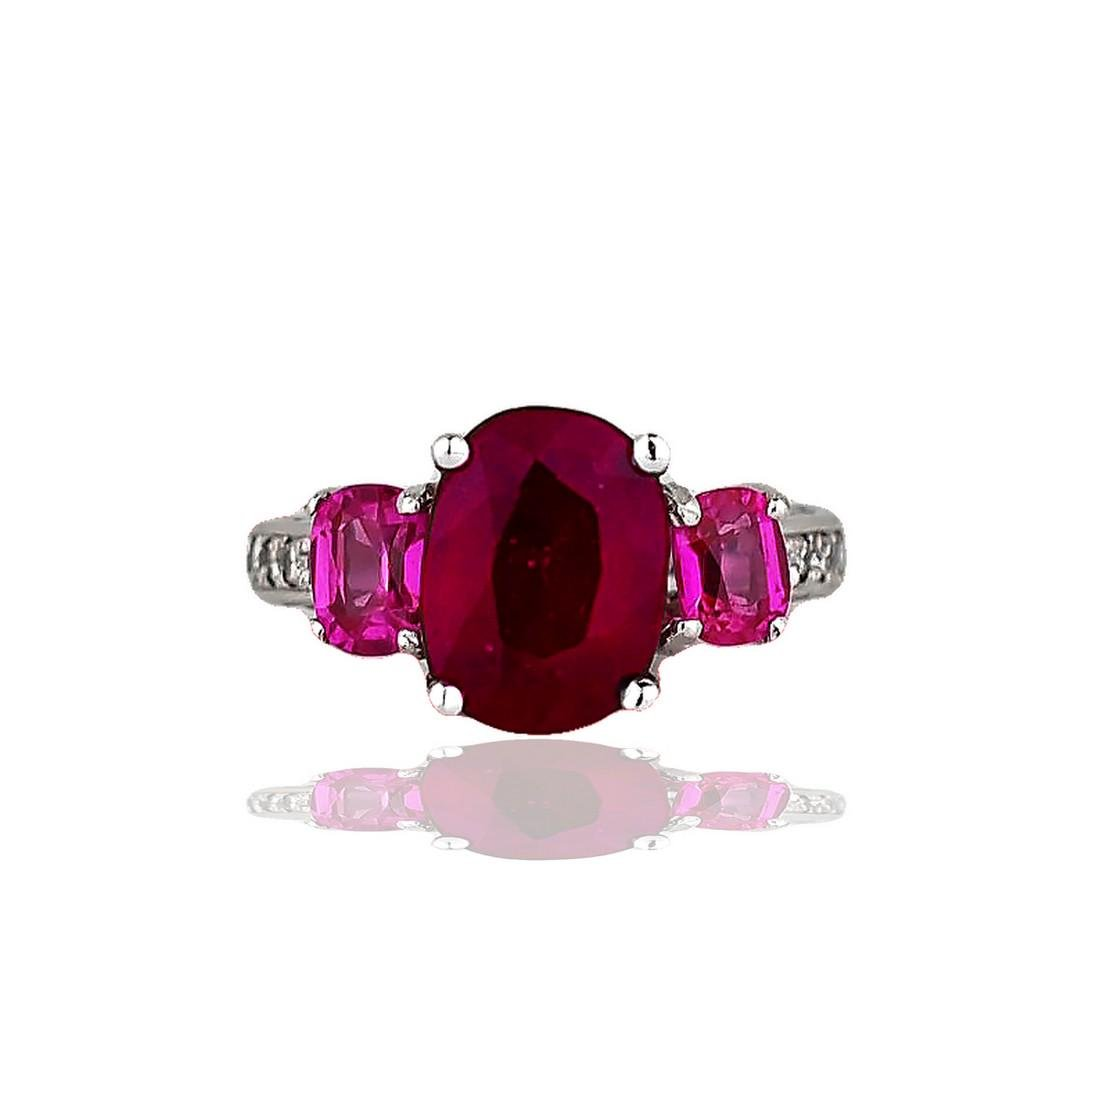 18 Karat White gold, 5 Carat Ruby Set in Three-Sided